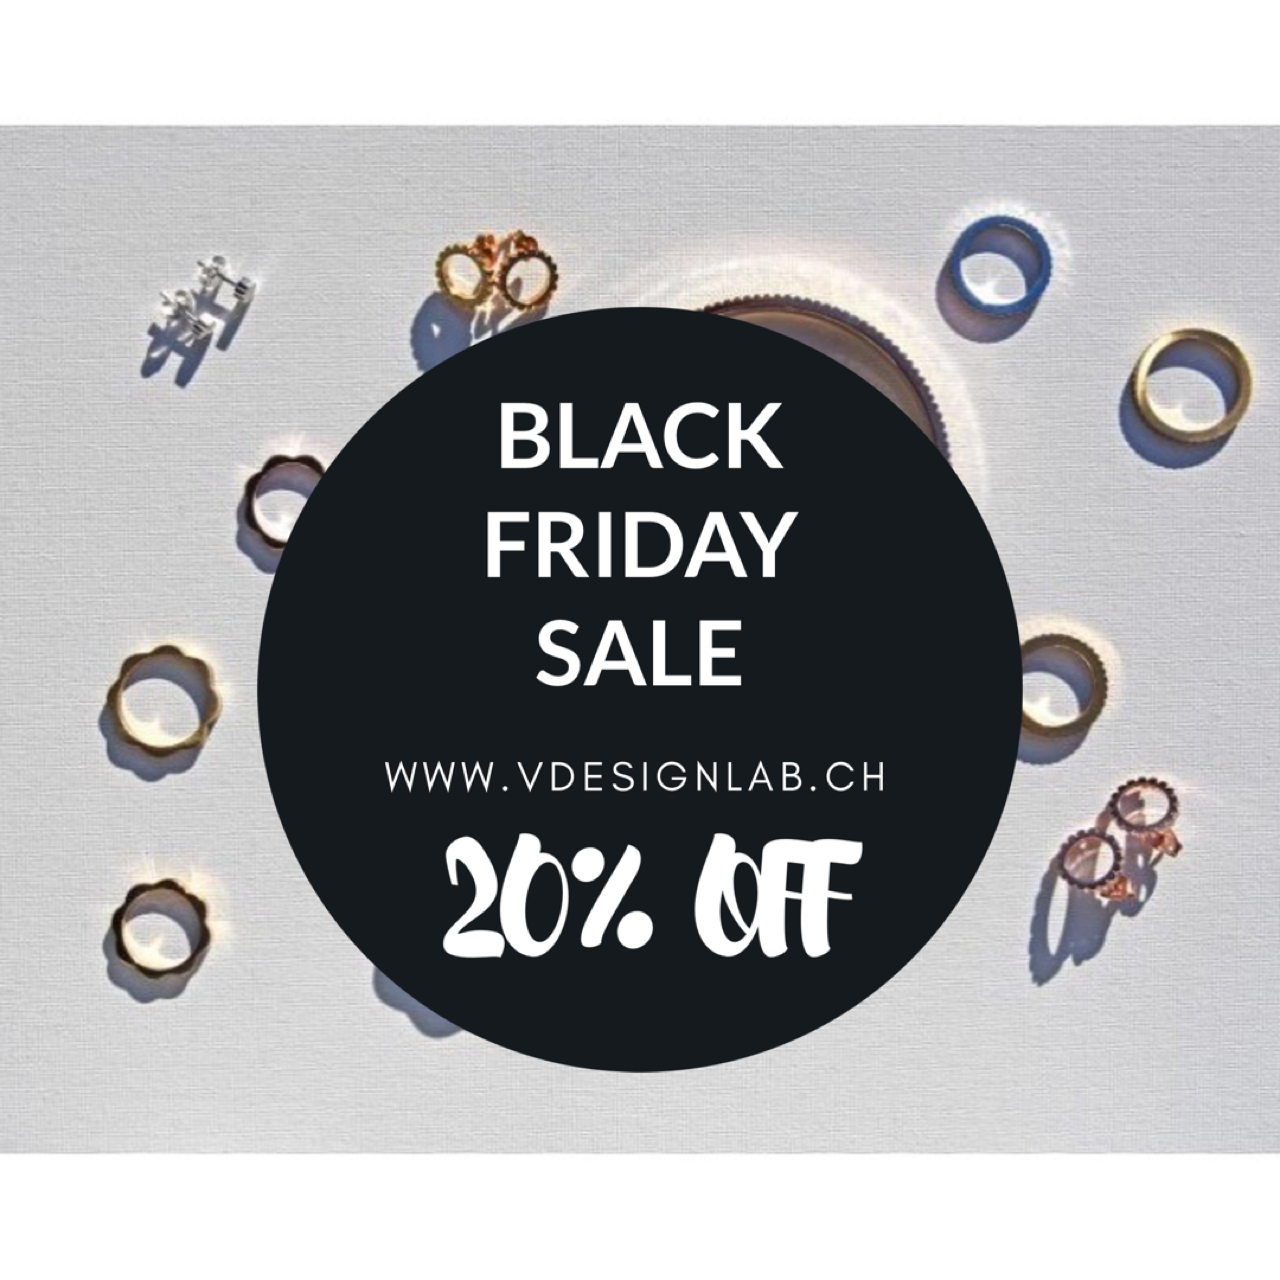 V DESIGN LAB Jewellery Black Friday?! YES! What is it about?